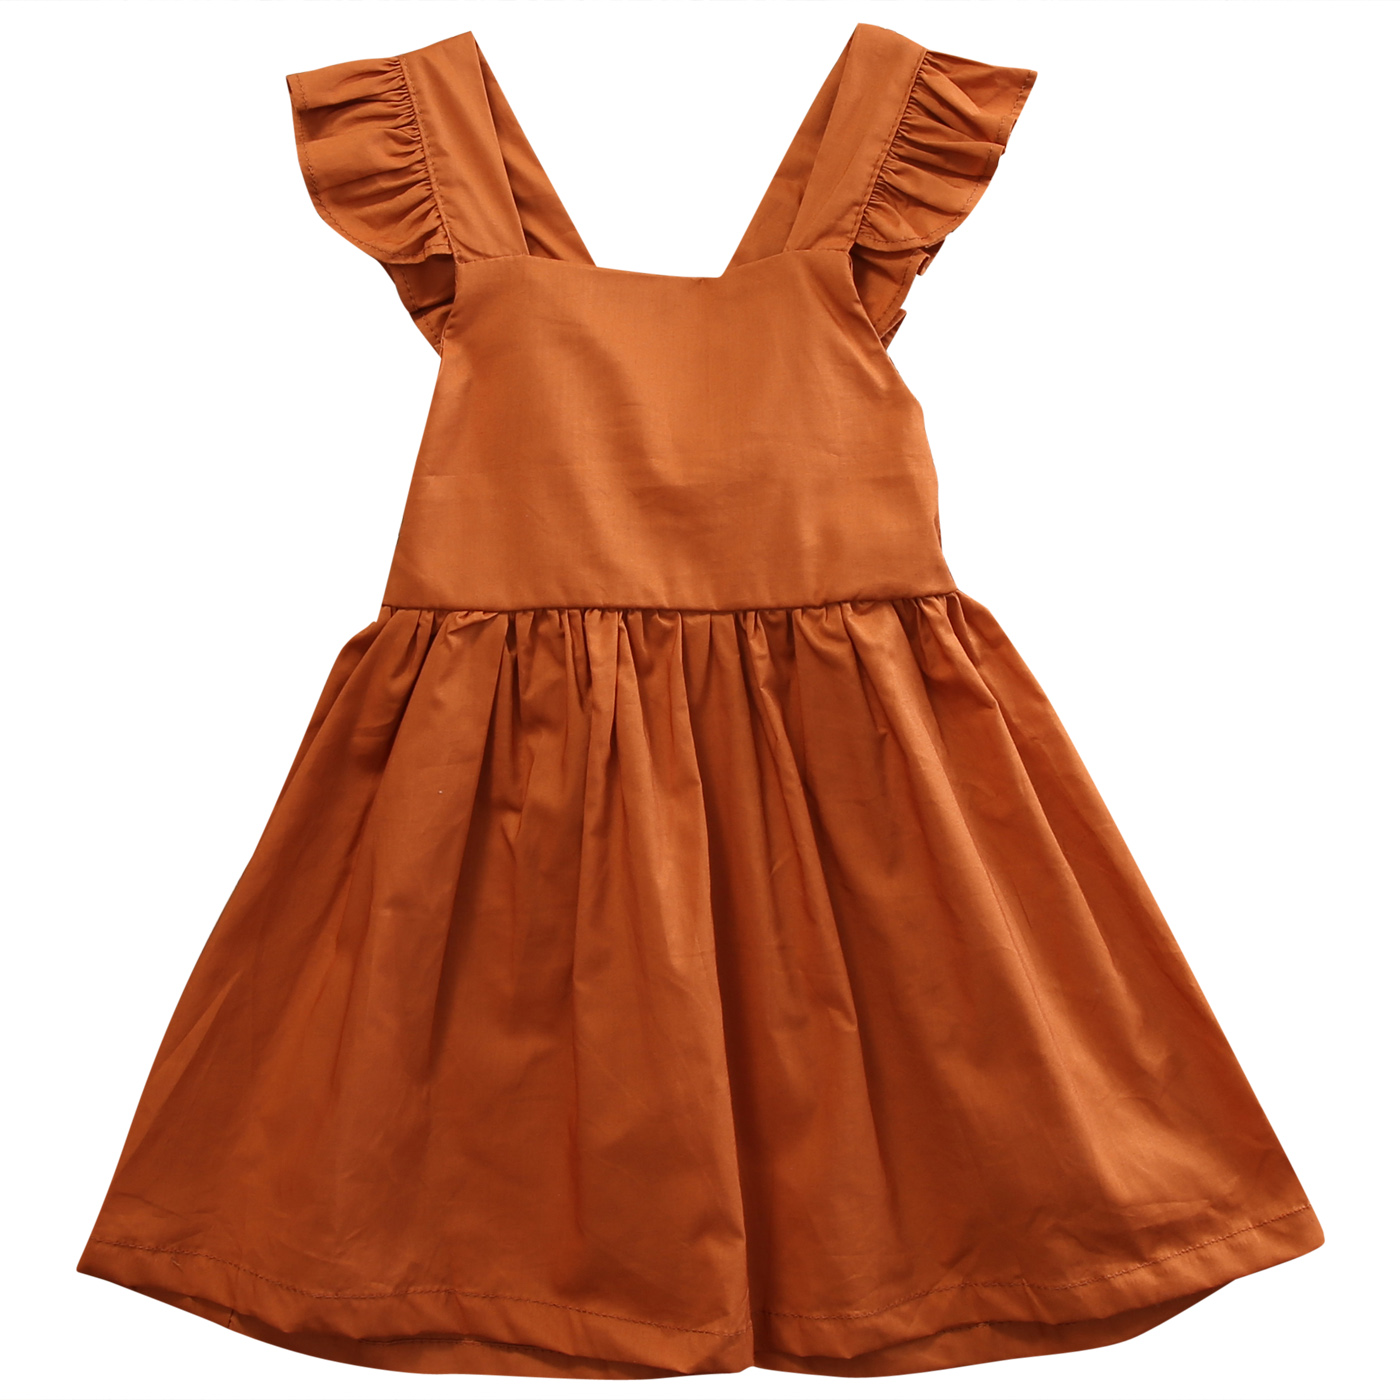 Baby Girls Infant Wedding Party Bowknot Sleeveless Ruffled Vest Dress Sundress картридж canon cli 471 bk c m y для mg5740 mg6840 цветной 0401c004